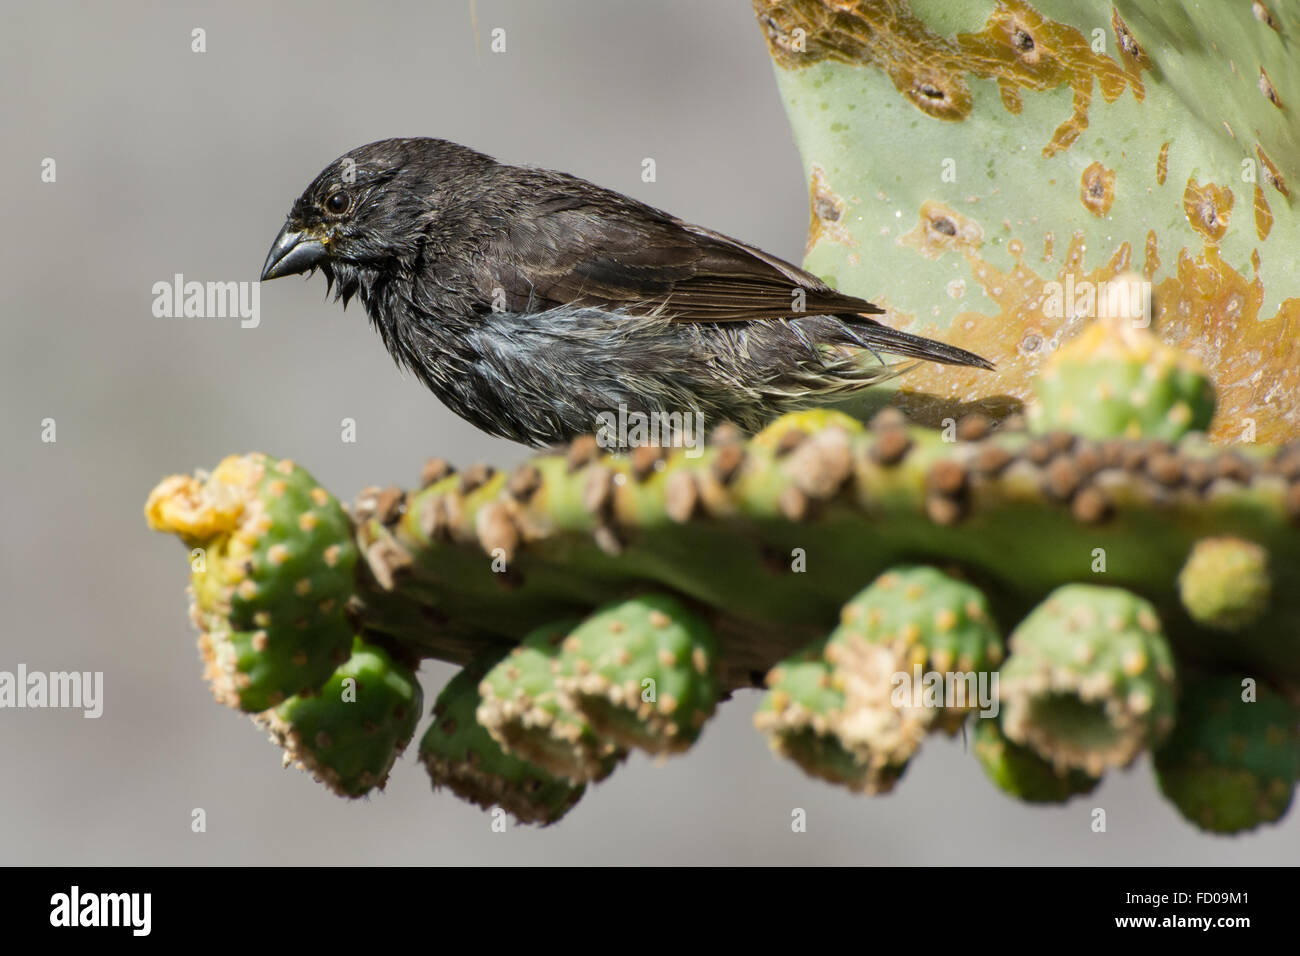 A small cactus finch, one of the Darwin's finches from the Galapagos islands briefly rests on the edge of a - Stock Image